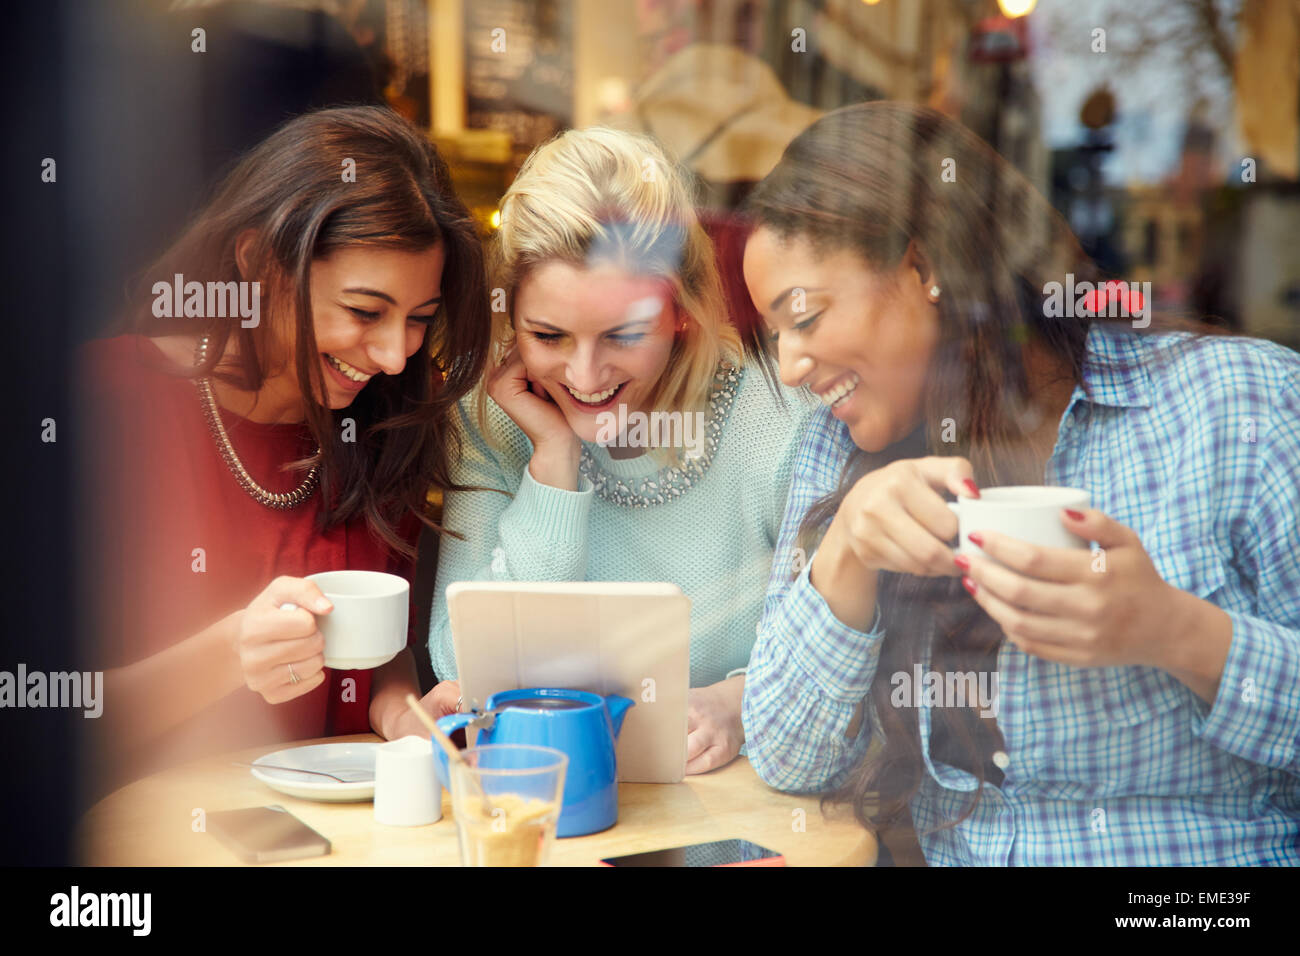 Group Of Female Friends In Caf' Using Digital Devices - Stock Image